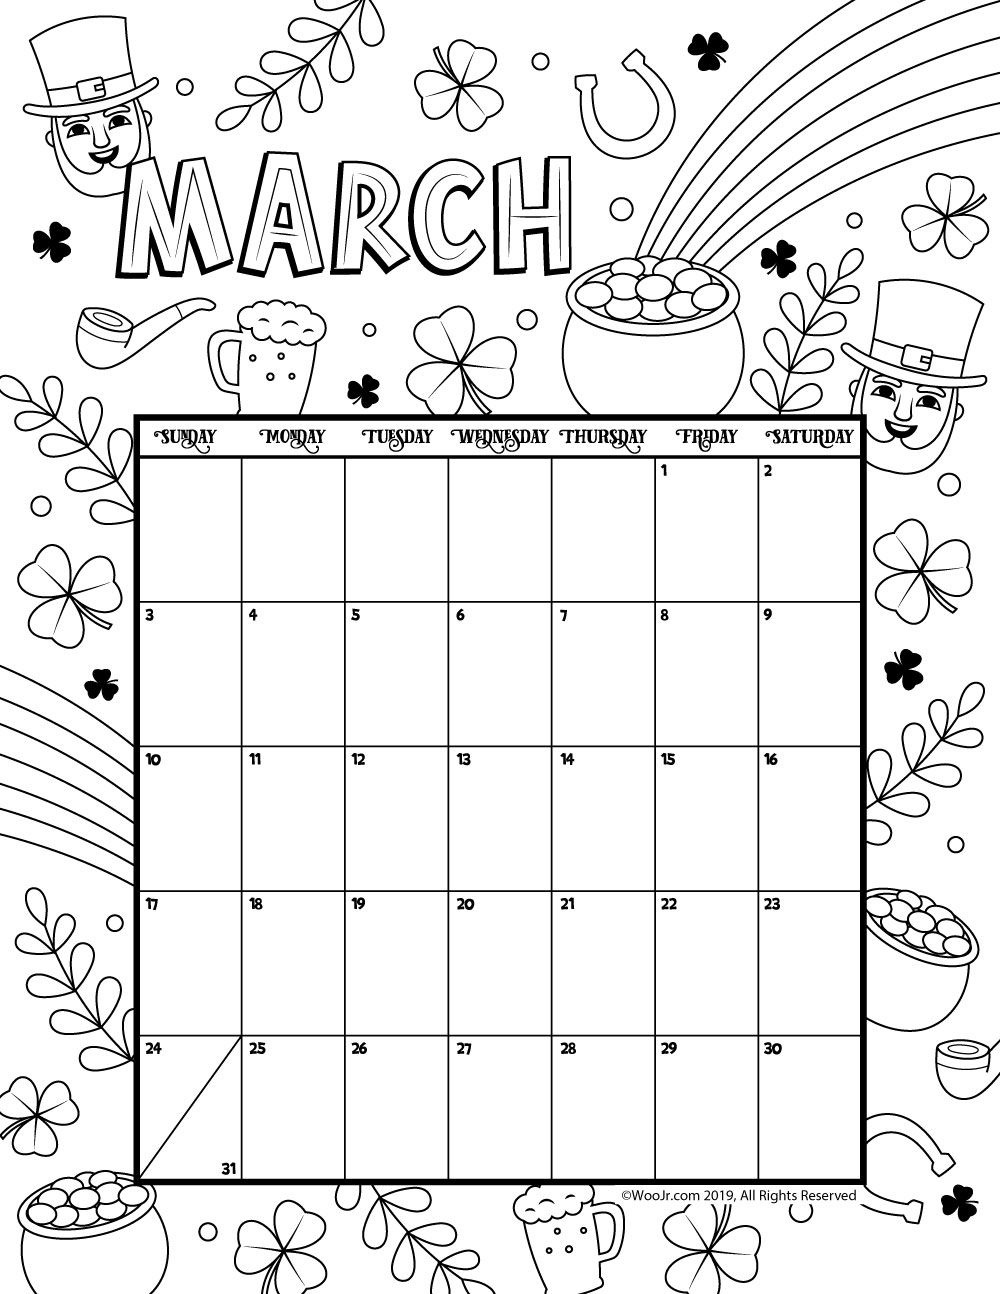 March 2019 Coloring Calendar | Daycare Funcare!! | March Calendar - Free Printable March Activities